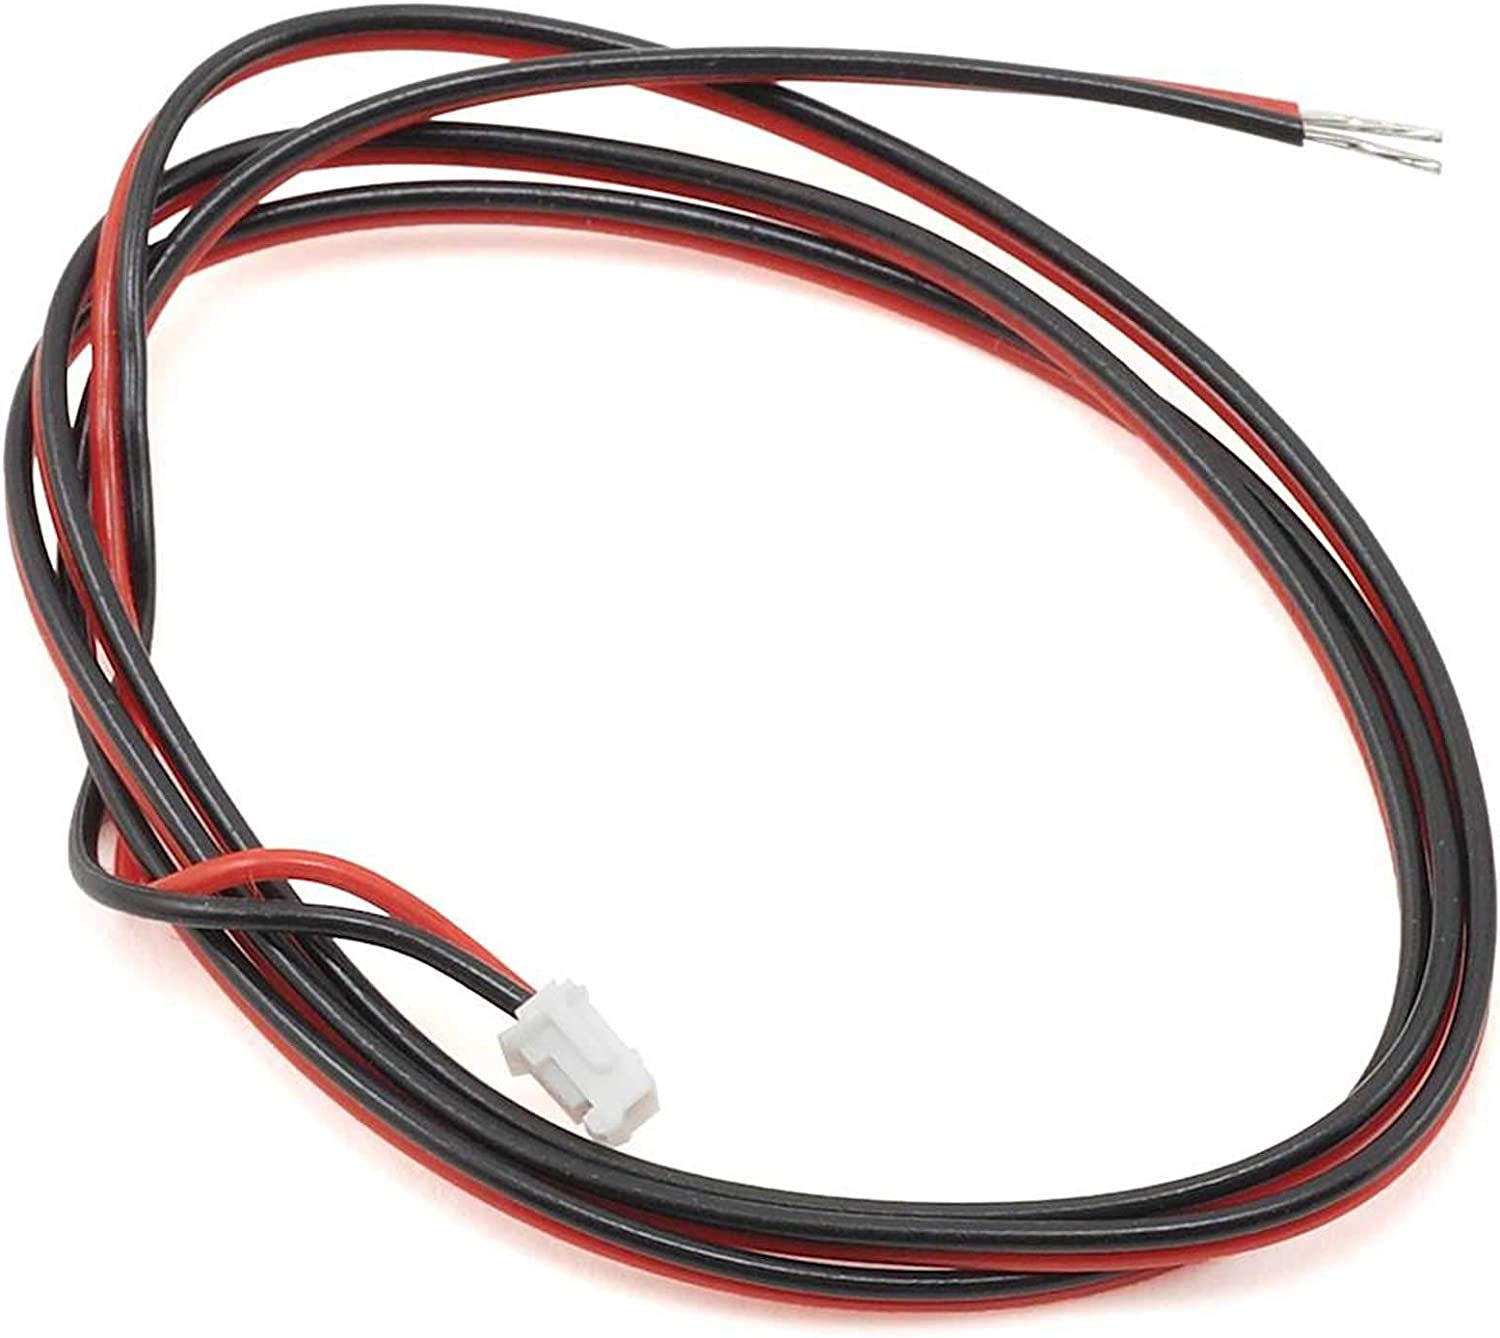 Spektrum Aircraft Telemetry Max 80% OFF Flight Pack Sensor-2pin Voltage Limited Special Price